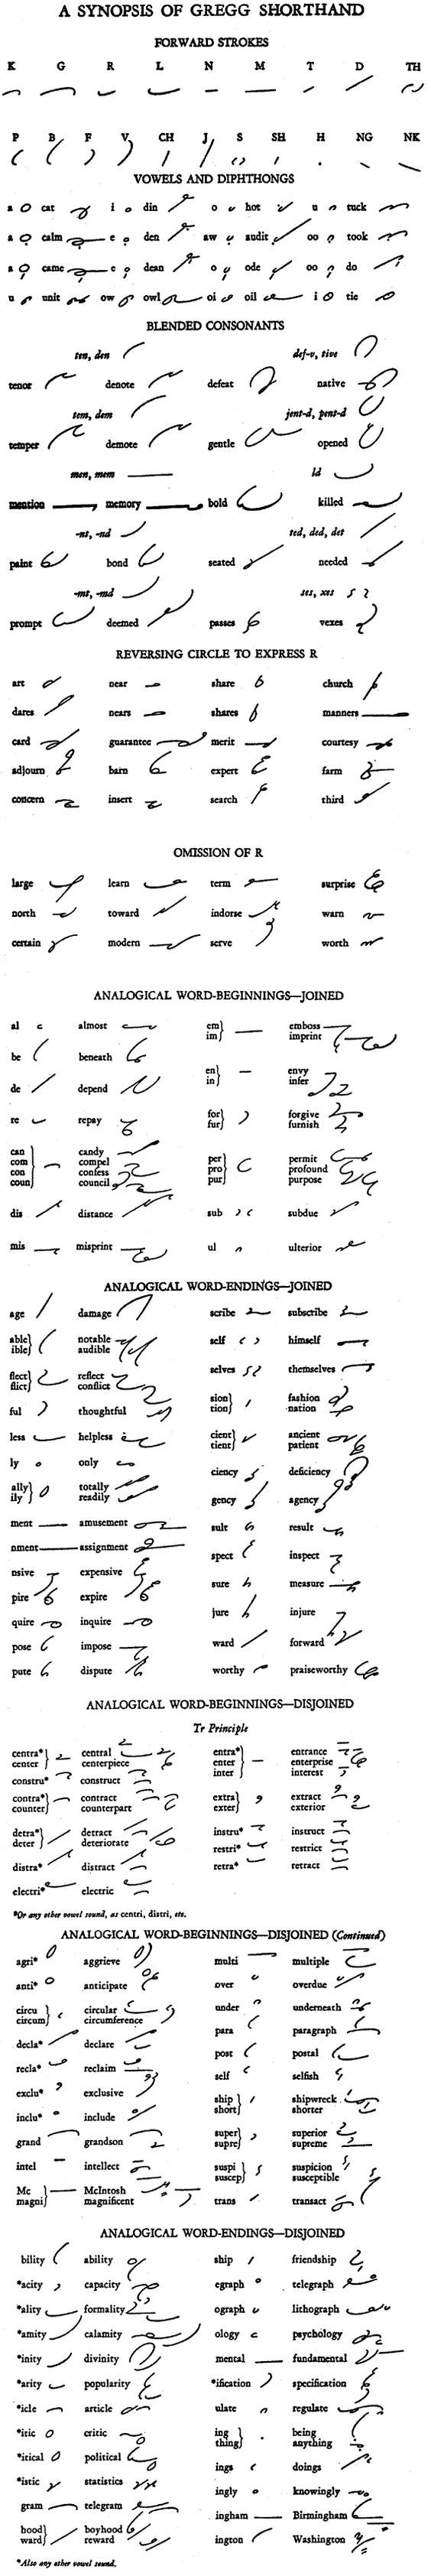 Hated this class in highschool but I meet some great people.About Anniversary Gregg Shorthand - Gregg Shorthand